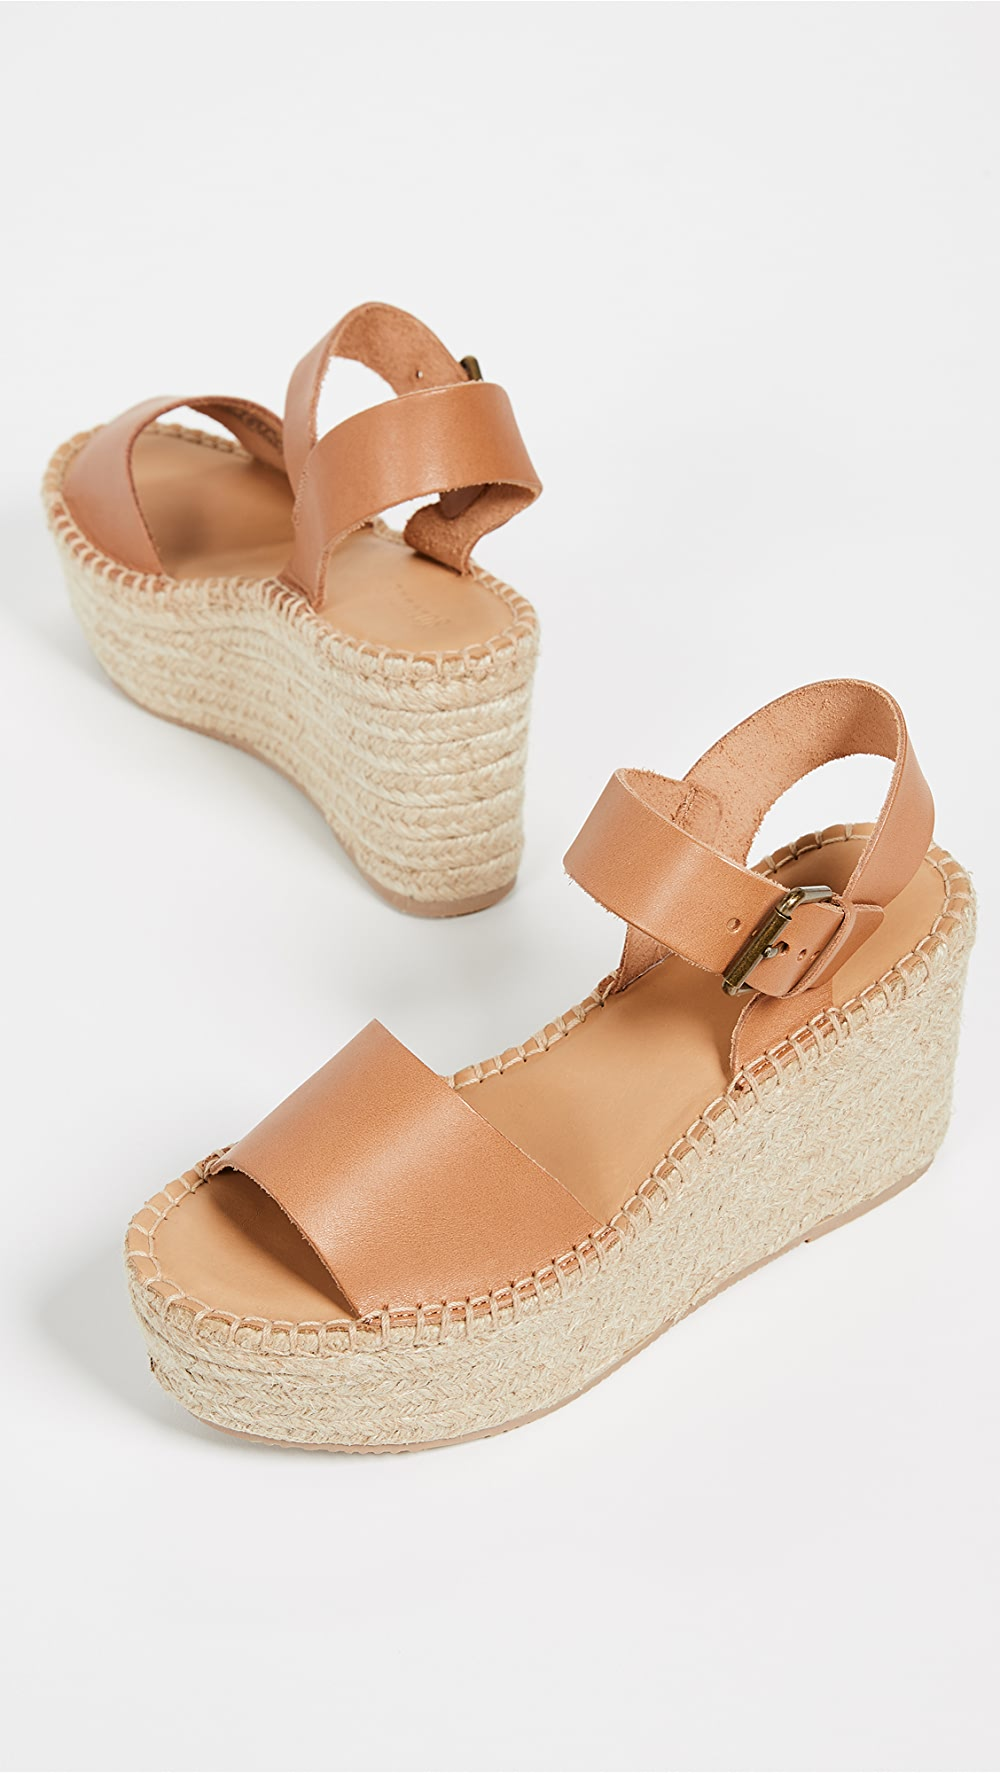 Romantic Soludos - Minorca High Platform Sandals To Ensure A Like-New Appearance Indefinably